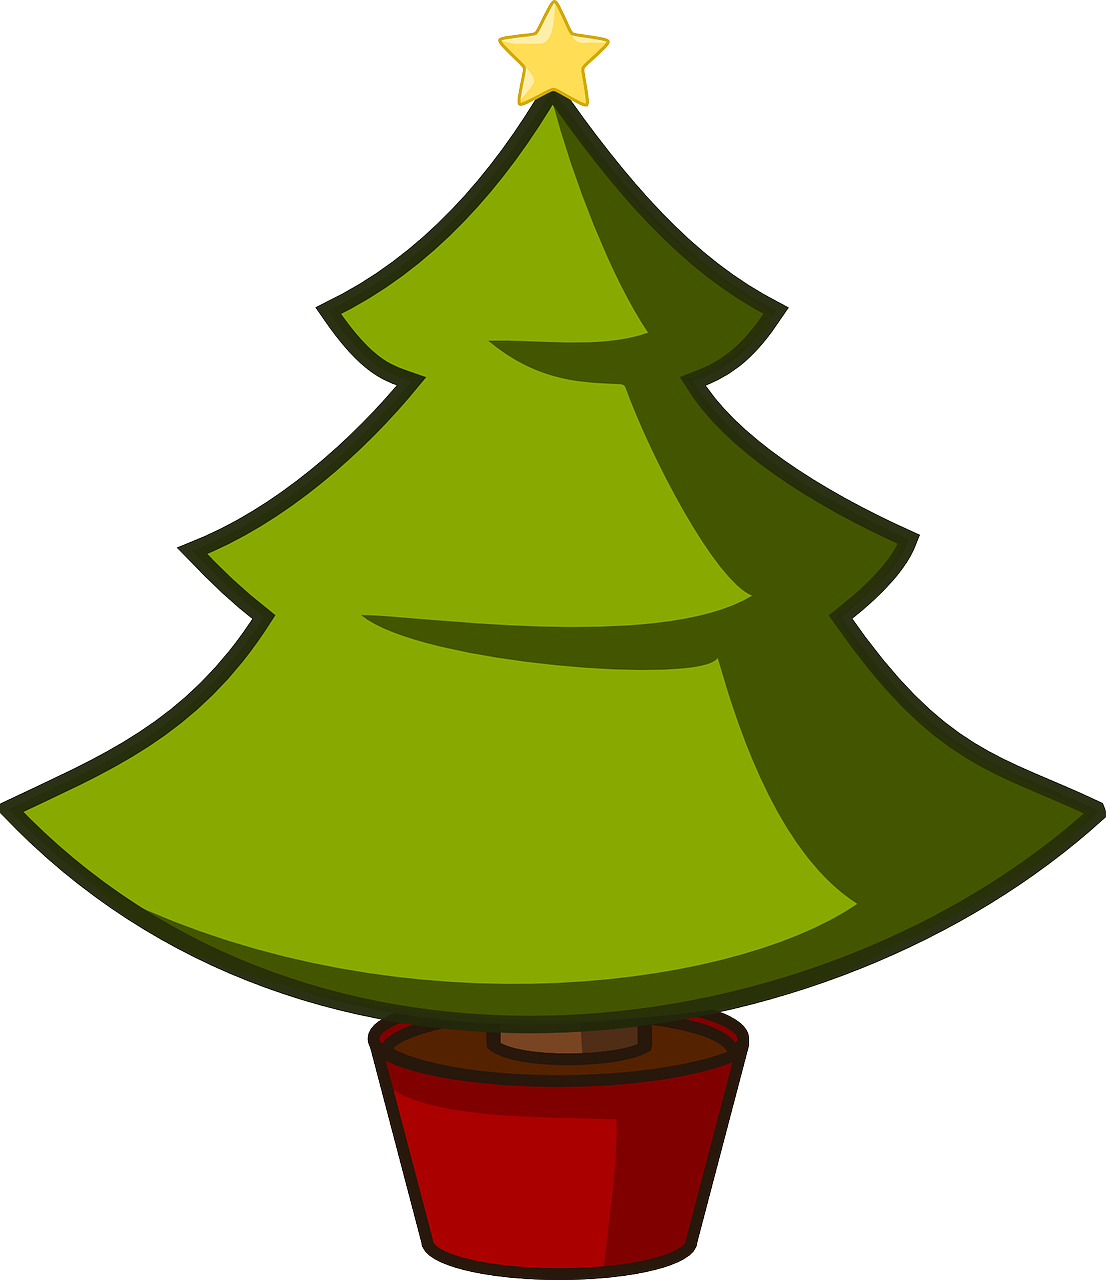 How To Draw A Christmas Tree 10 Pics How To Draw In 1